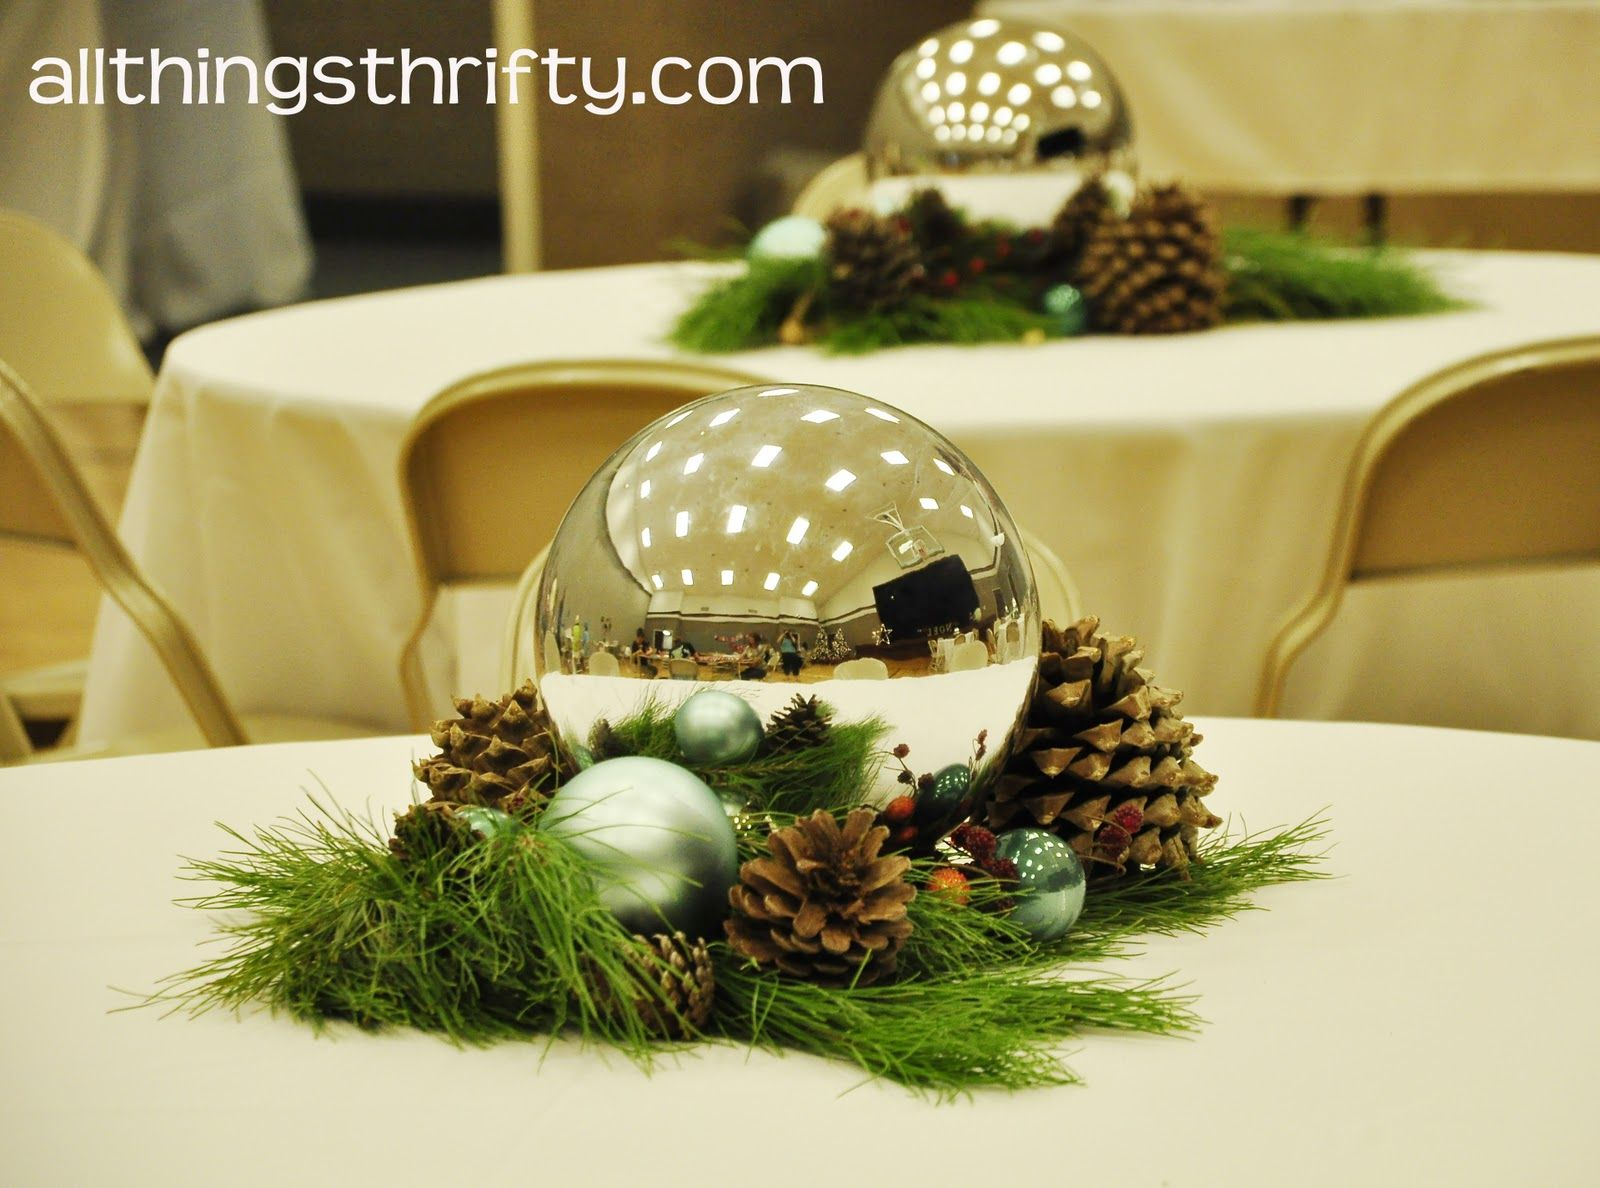 Christmas table decoration ideas for parties - Find This Pin And More On Christmas Simple Yet Awesome Natural Themed Christmas Party Dining Table Centerpieces